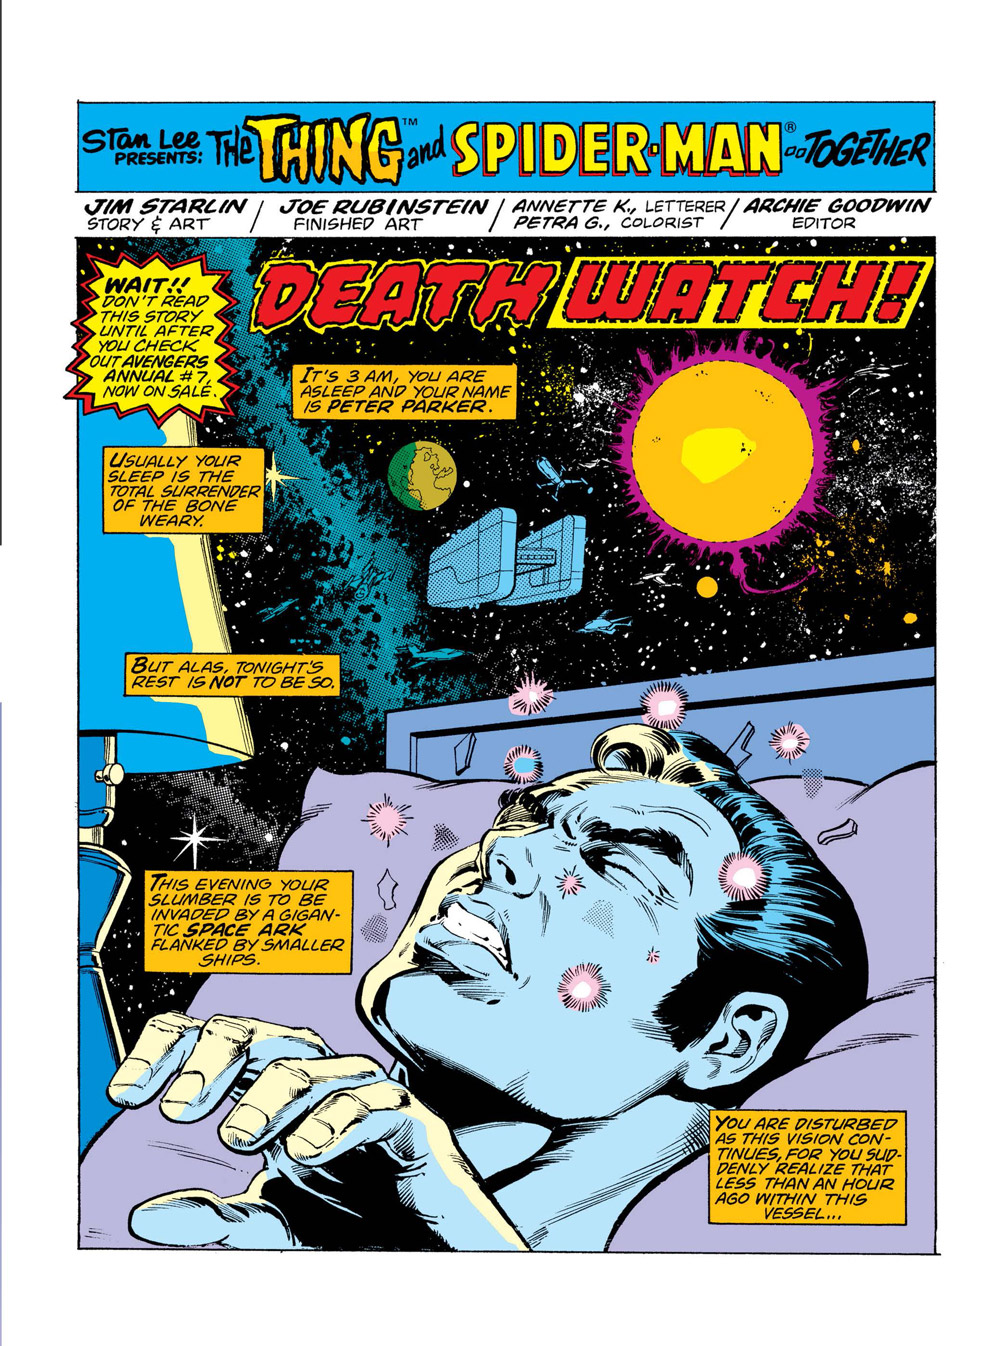 11_Marvel-two-in-one-2_001 ComicList Previews: MARVEL COMICS DIGEST #6 (AVENGERS VS THANOS)